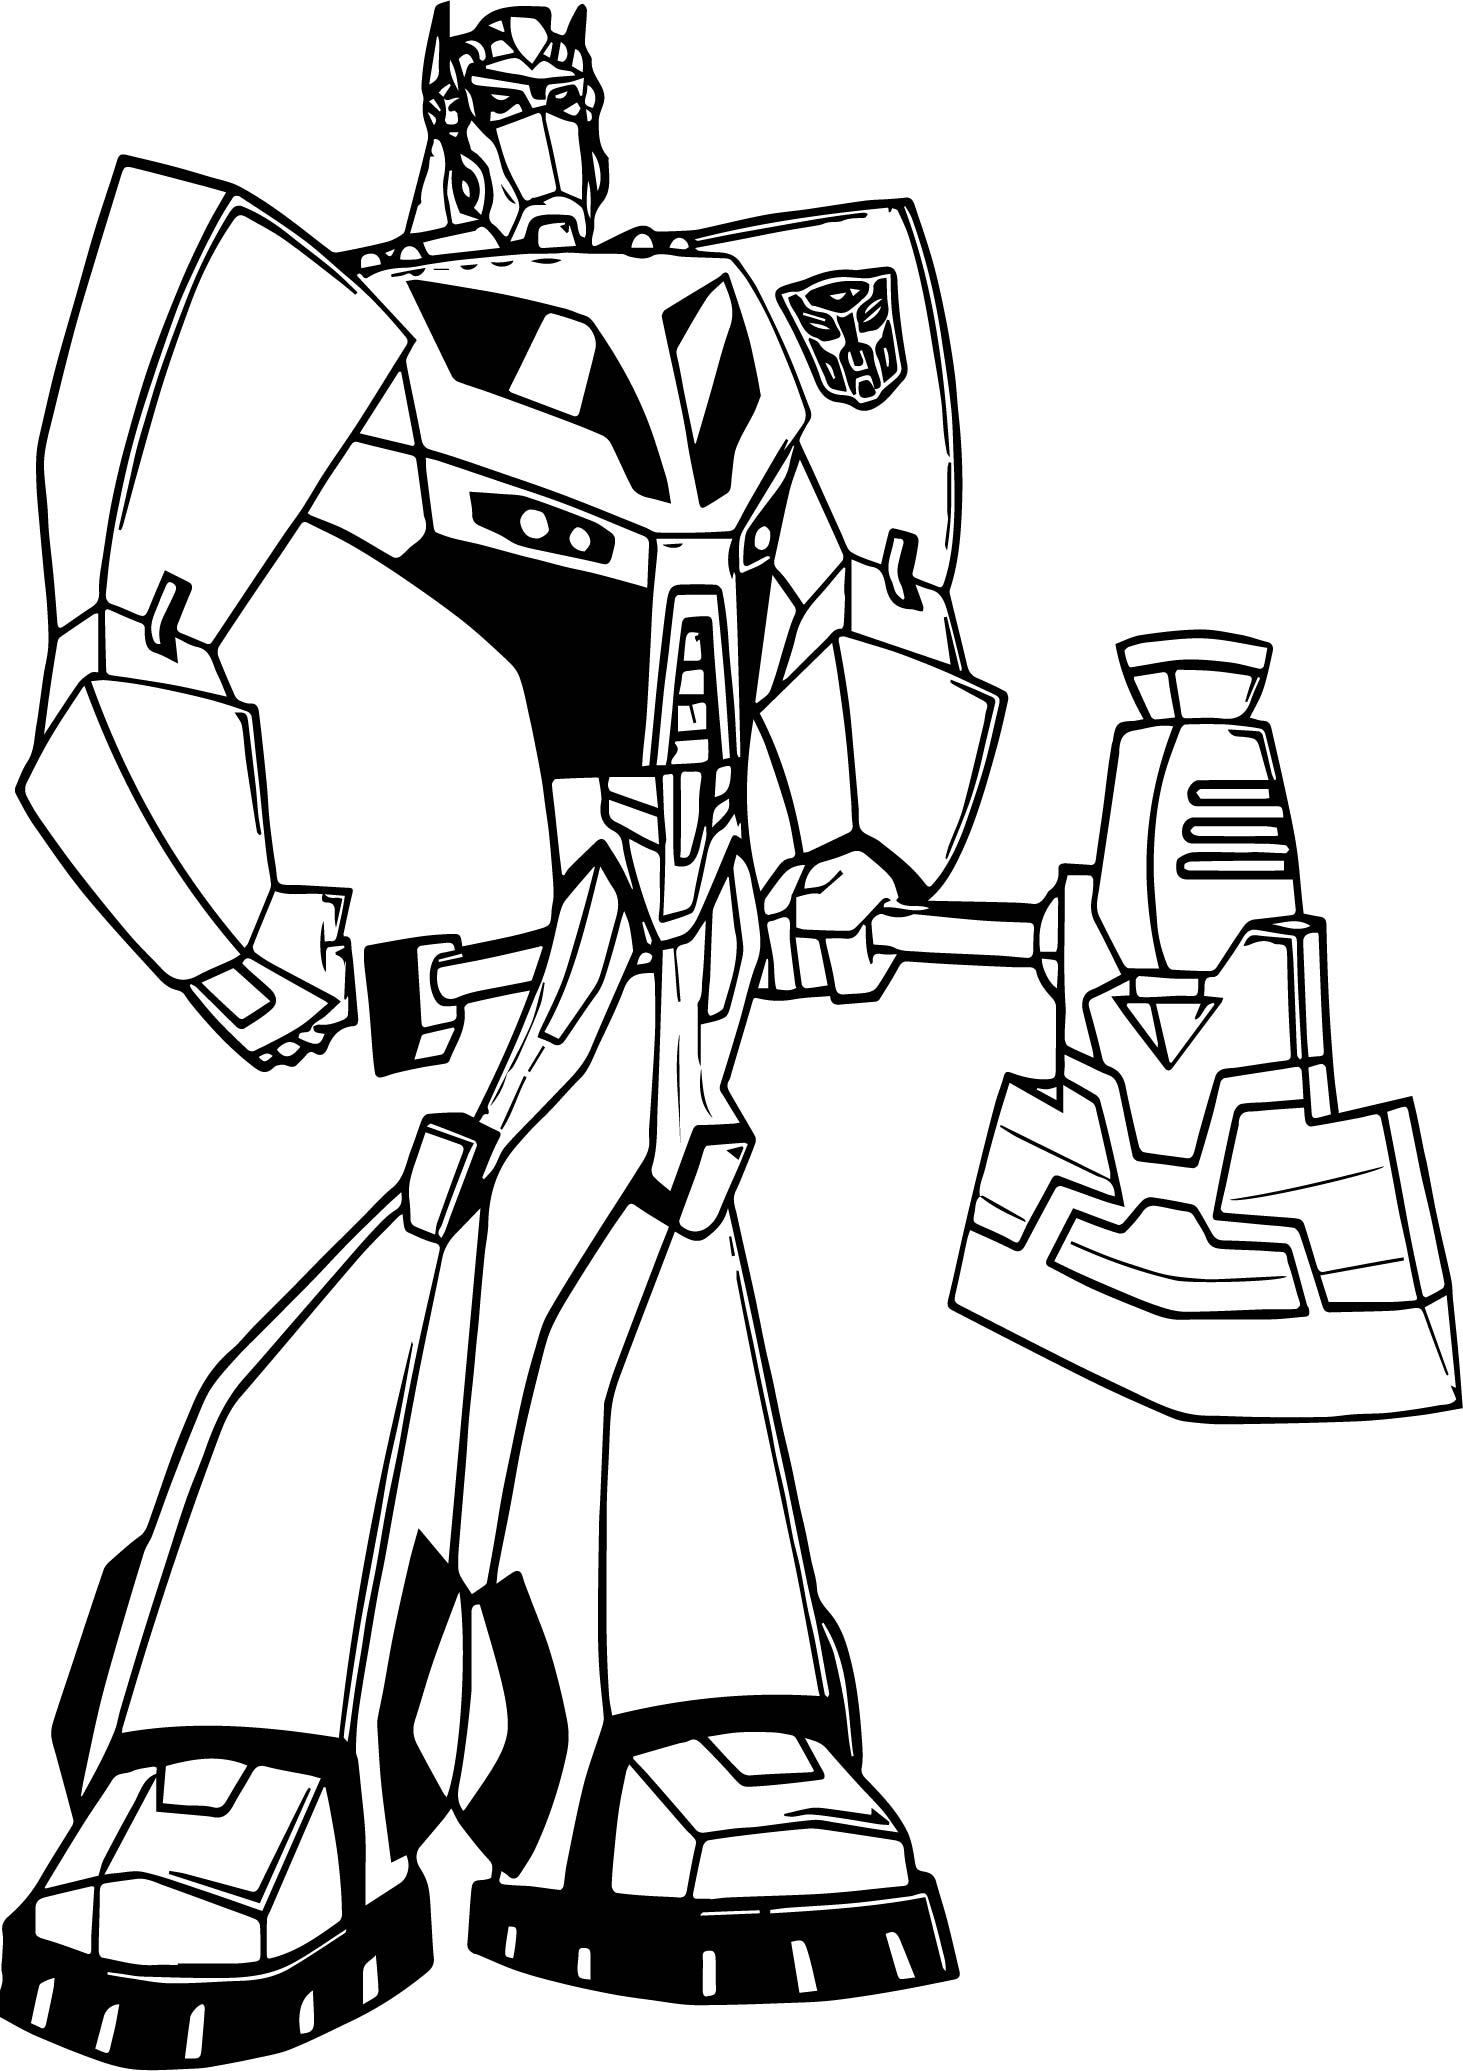 transformer colouring in free easy to print transformers coloring pages tulamama in transformer colouring